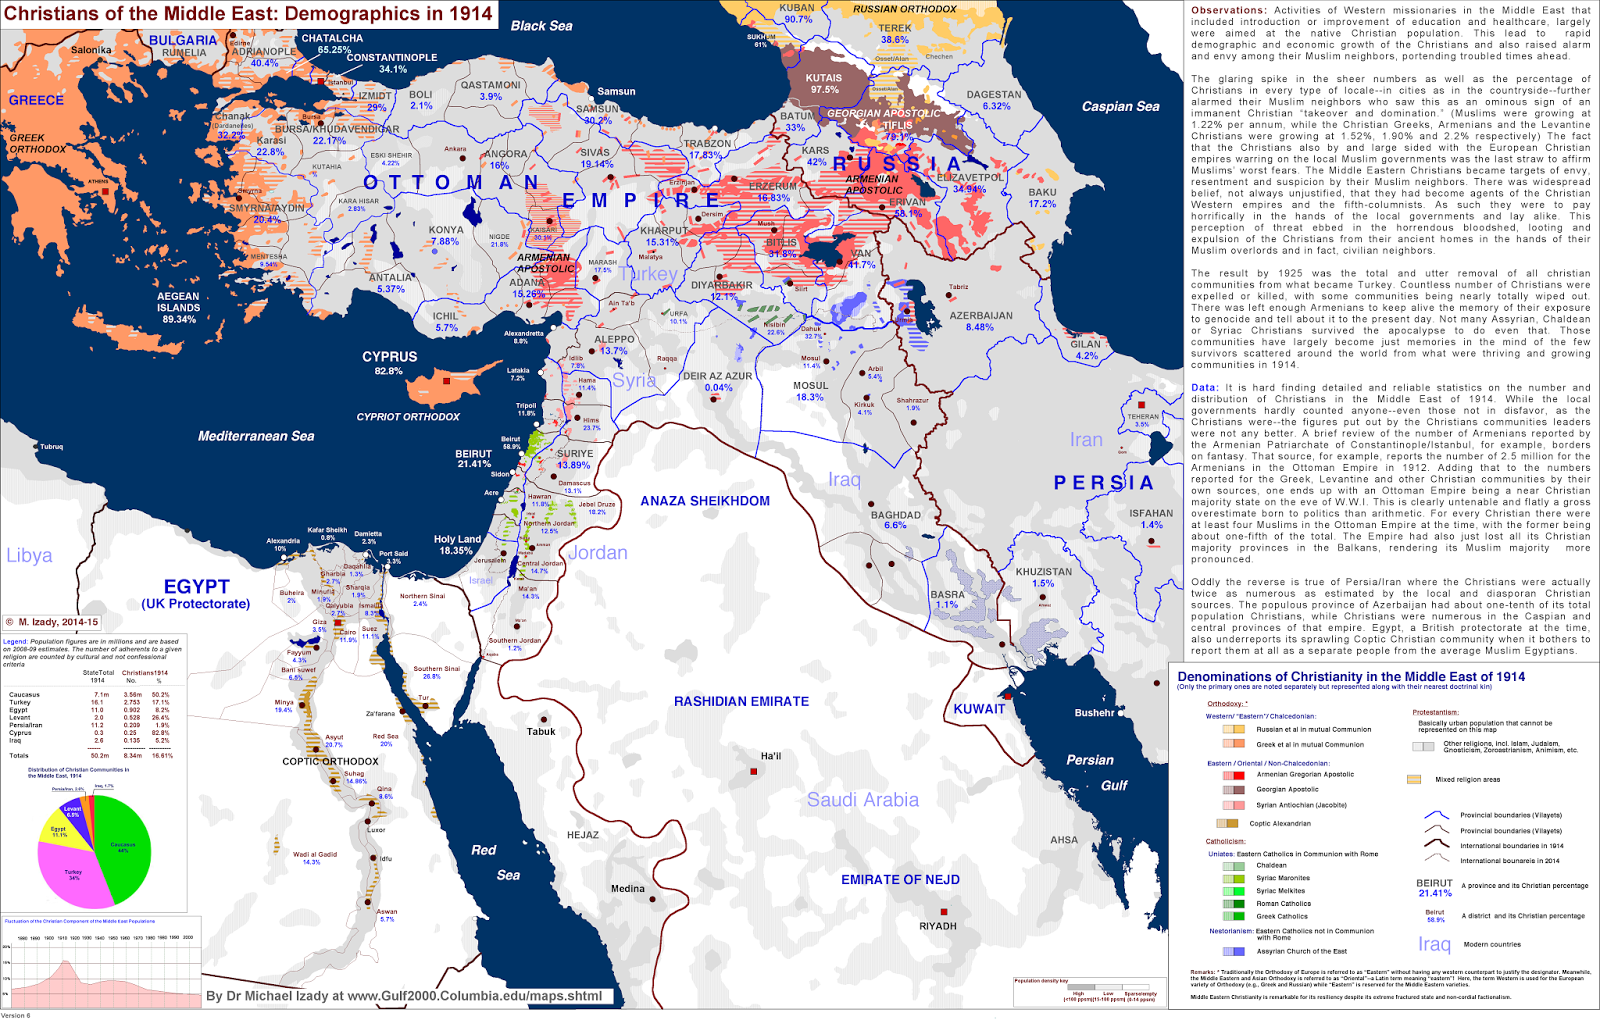 Christians of the Middle East: Demographics in 1914